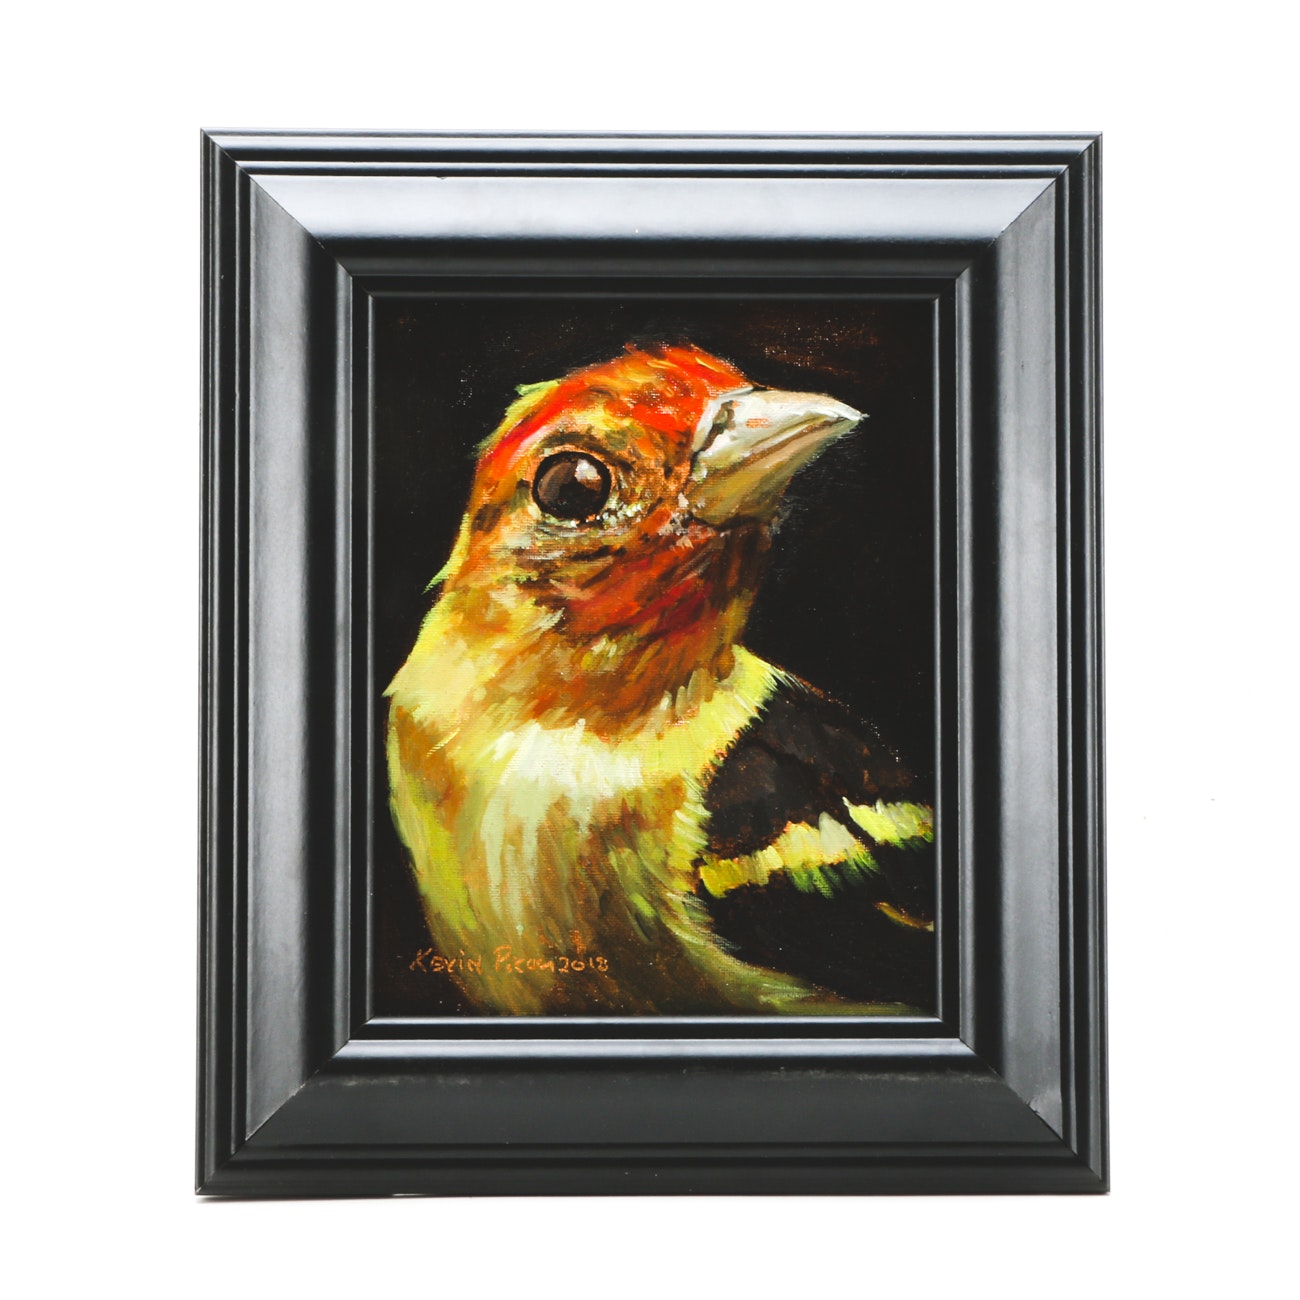 Kevin Picou Original Oil Painting on Canvas Board of a Bird